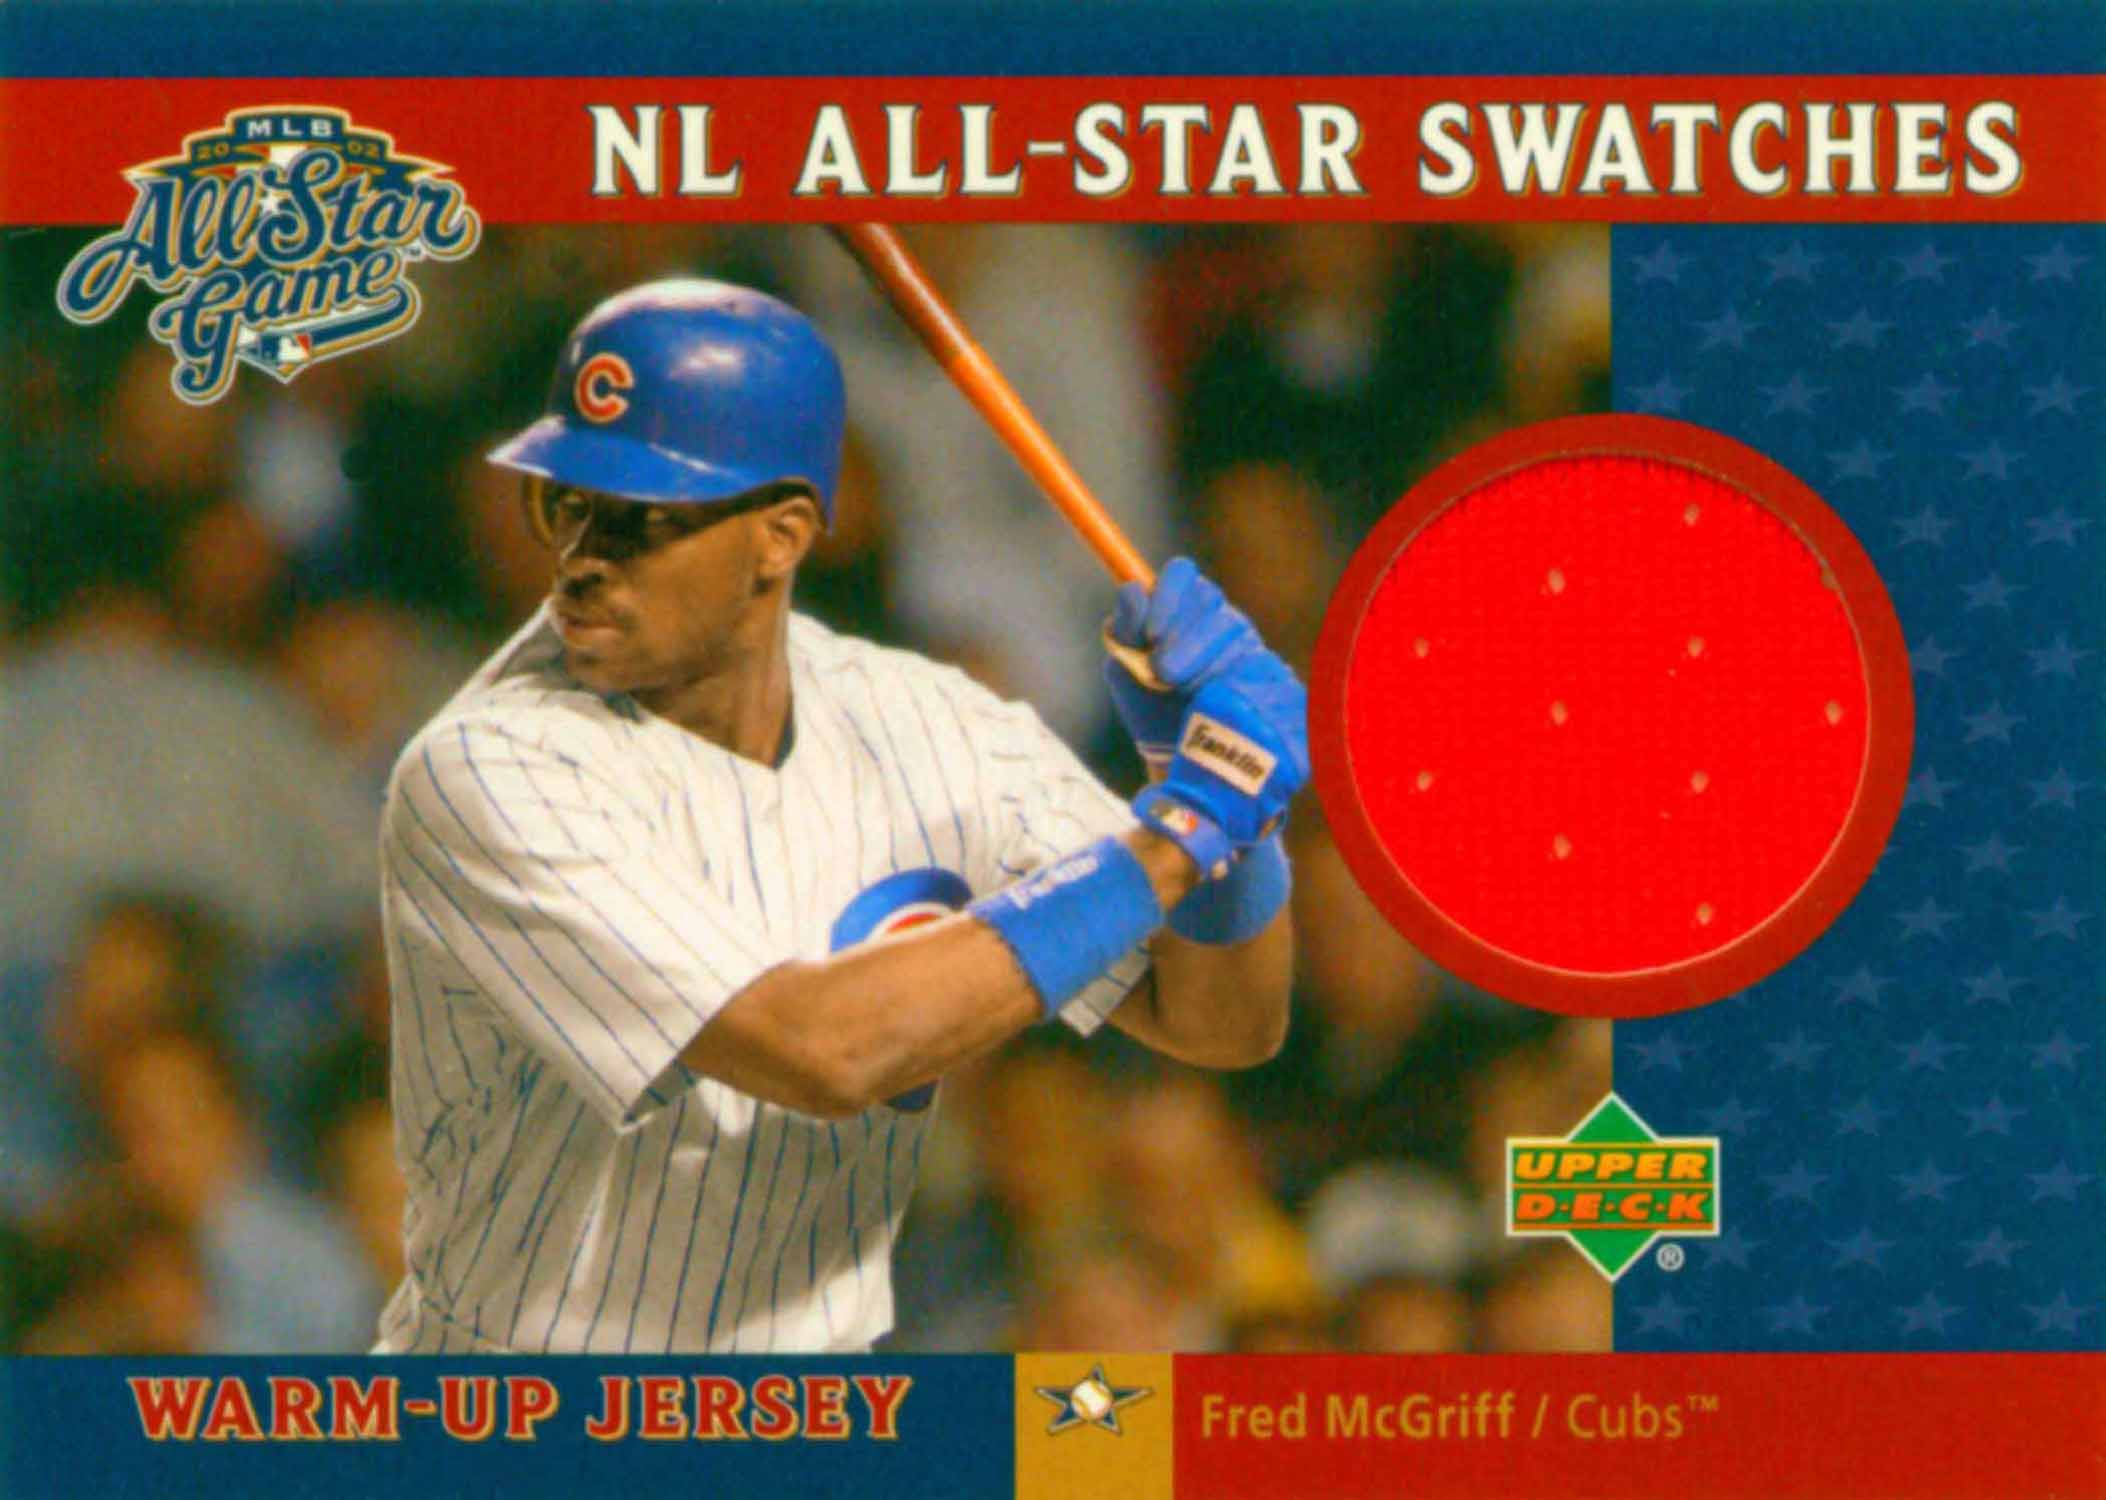 2003 Upper Deck NL All-Star Swatches